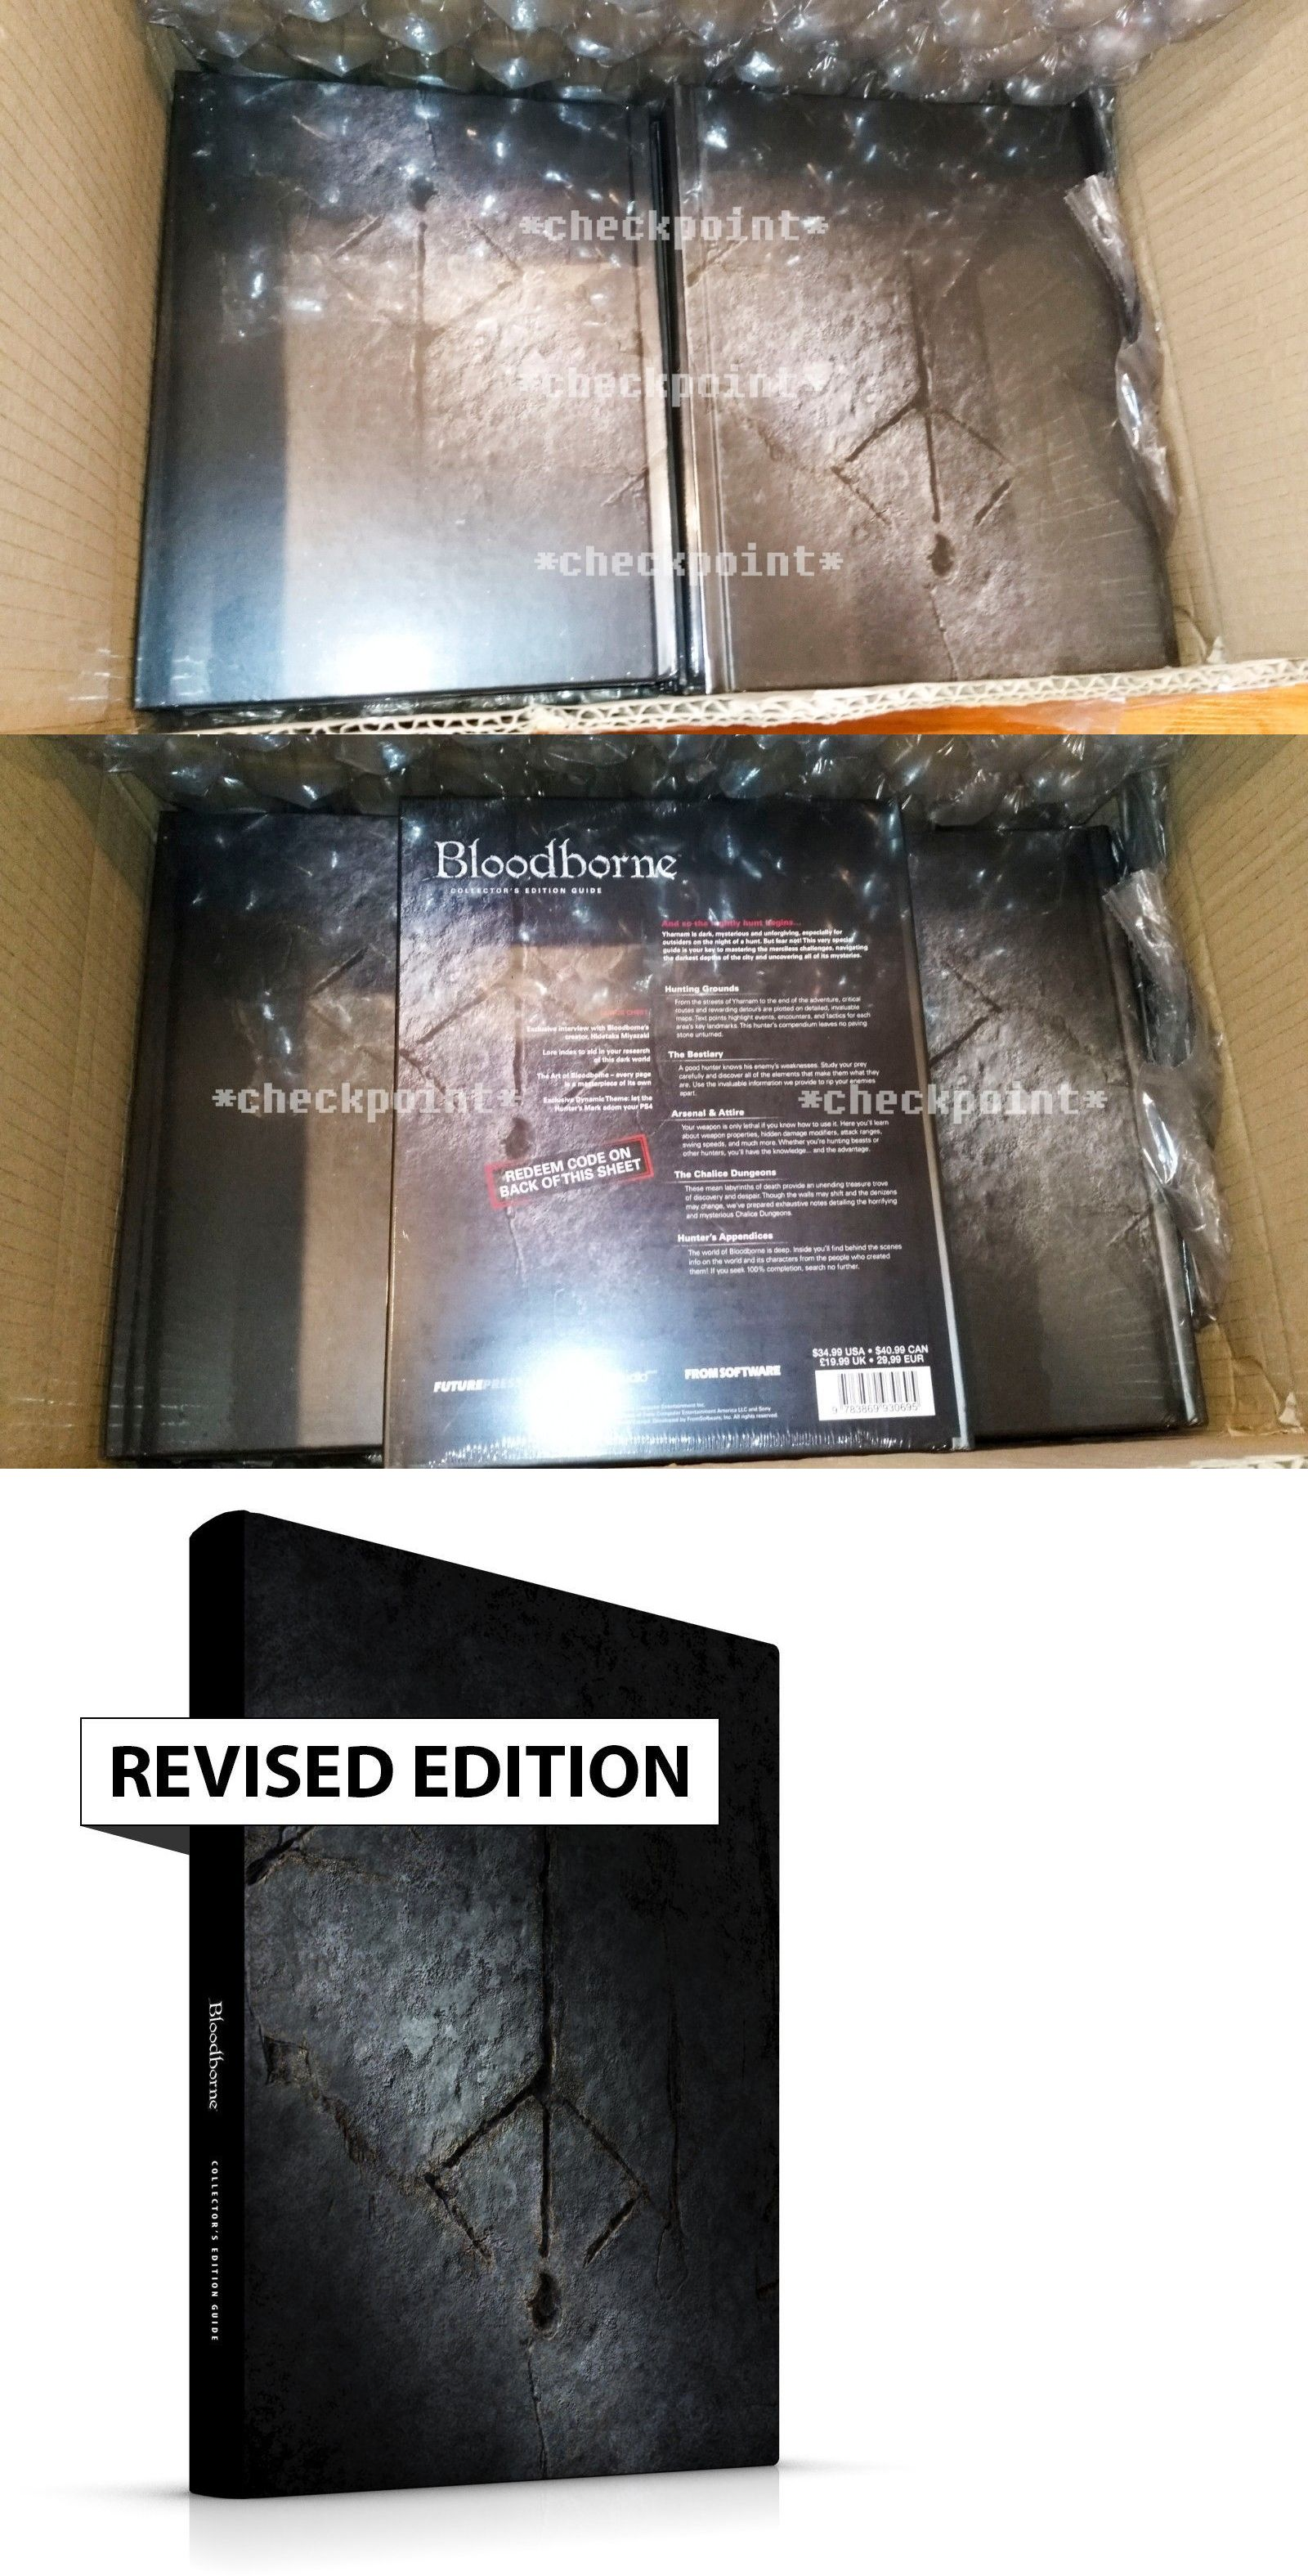 Strategy Guides And Cheats 156595 New Bloodborne Collector S Edition Strategy Guide Hardcover Updated Edition Buy It With Images Bloodborne Coding Games Strategies